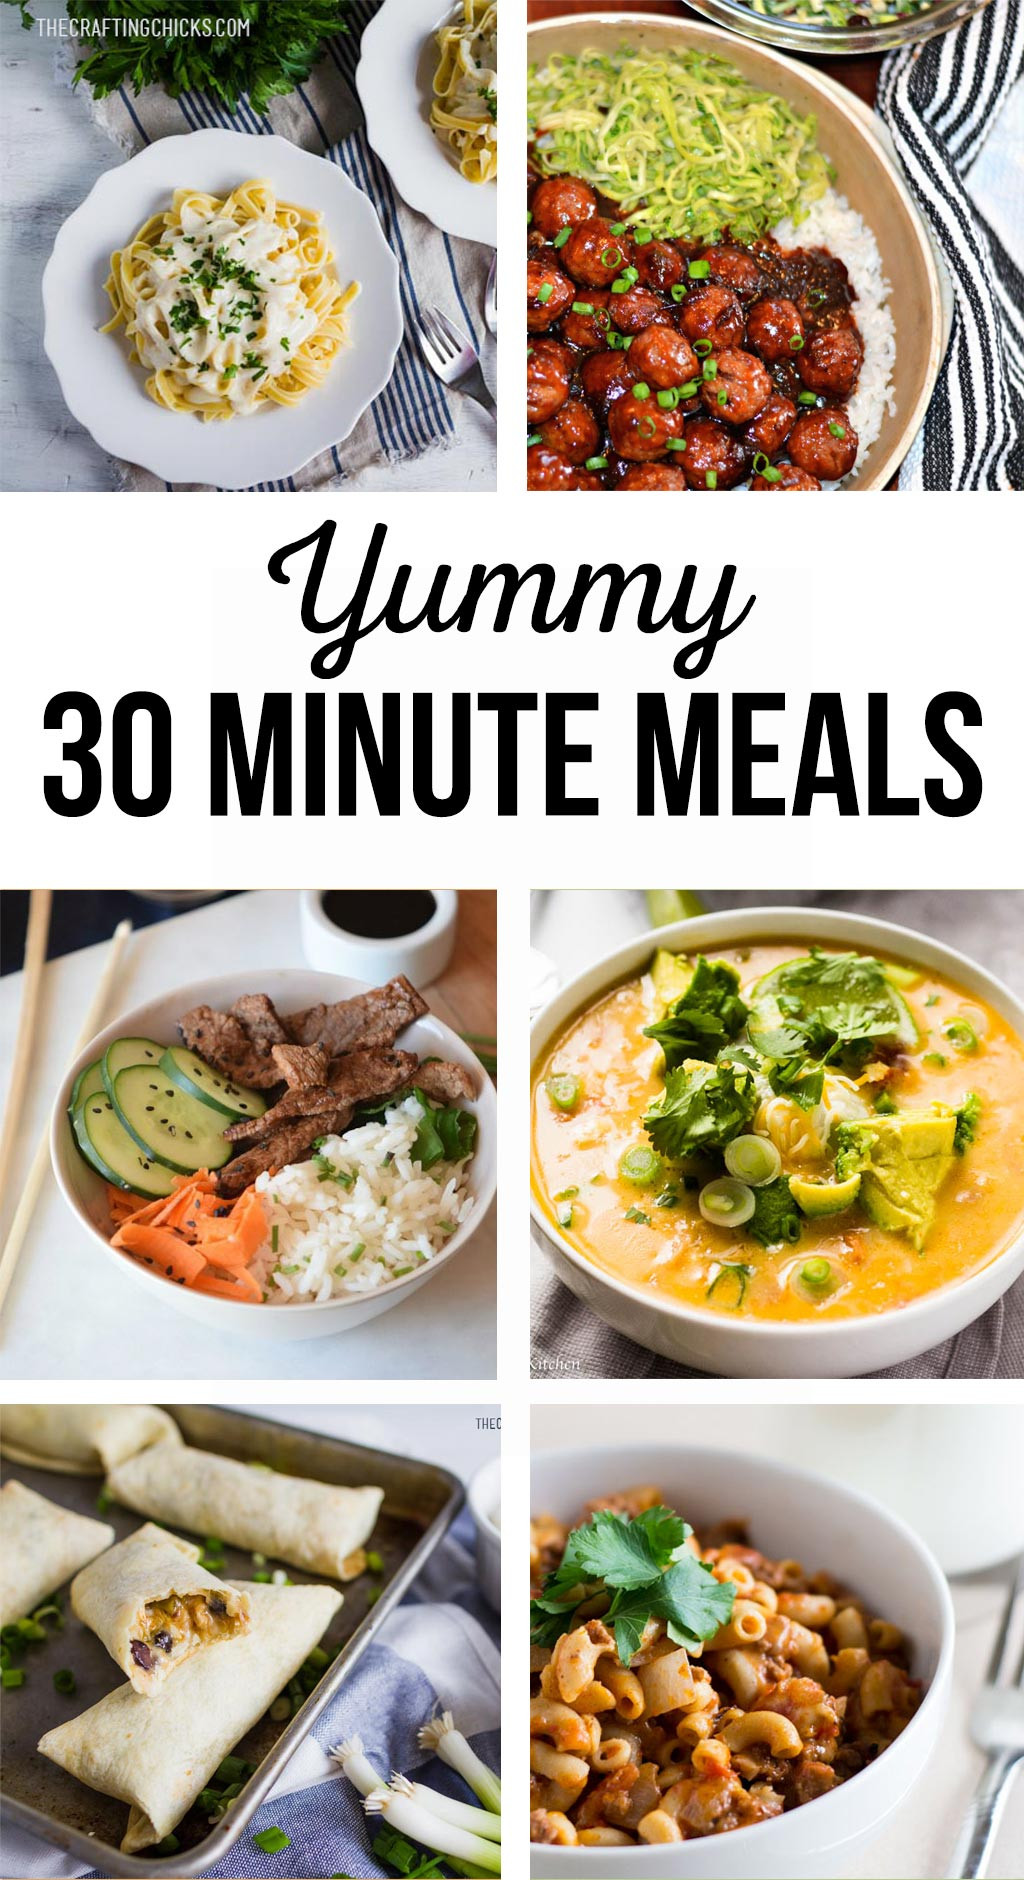 30 Minute Dinners  30 Minute Meals The Crafting Chicks